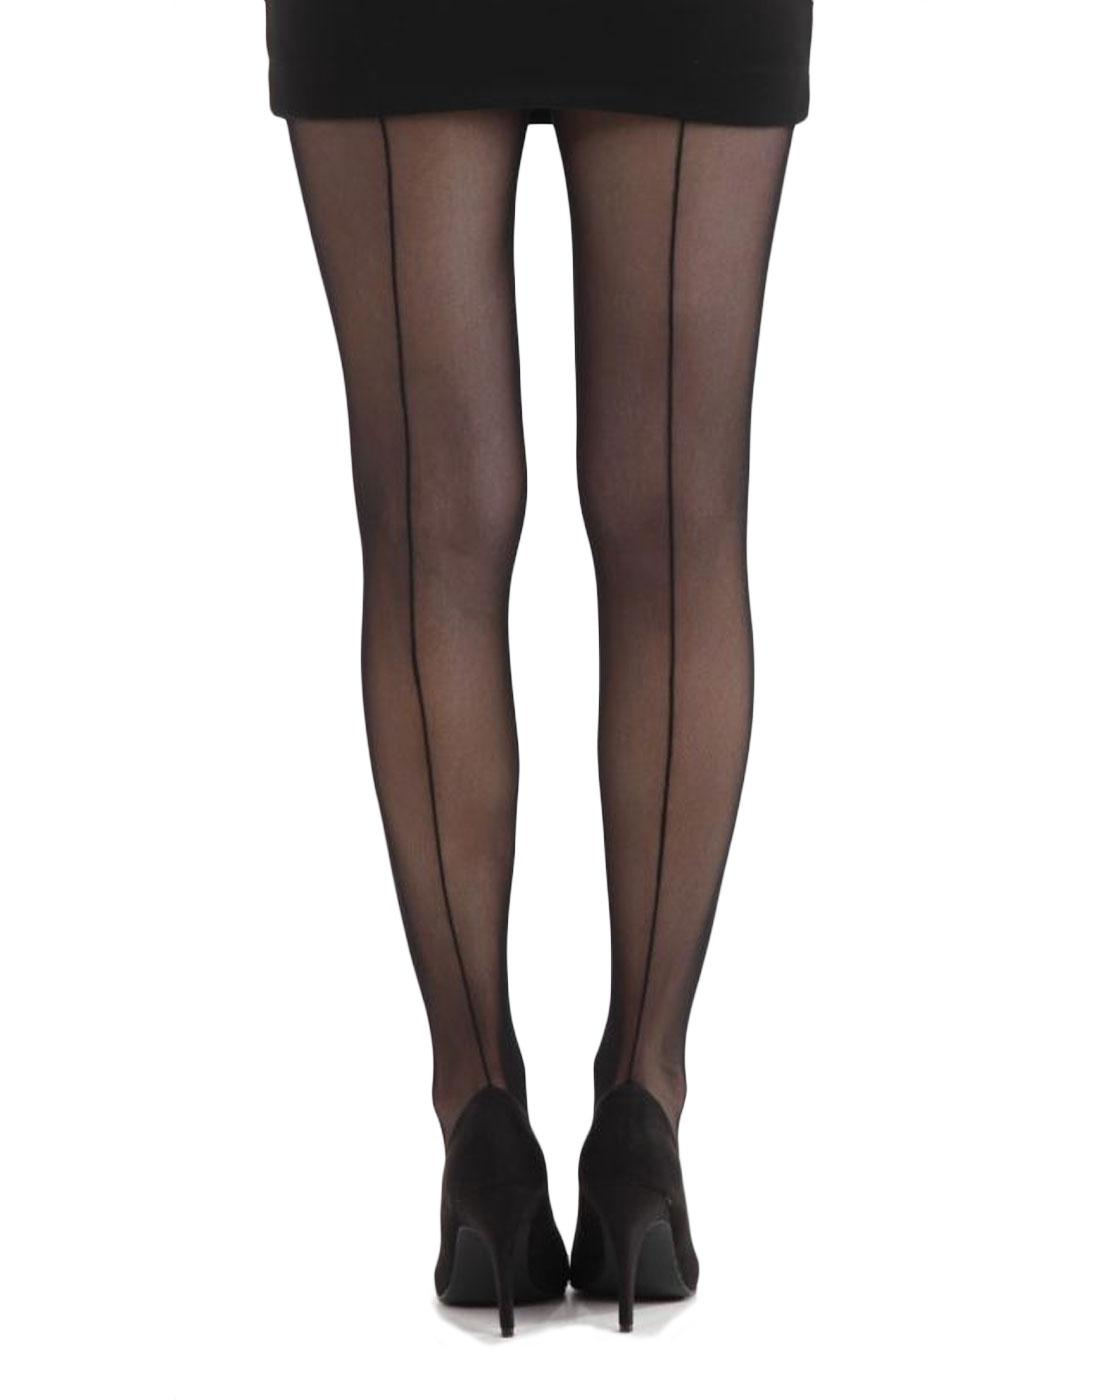 + PAMELA MANN Tulle Pencil Seamed Tights in Black